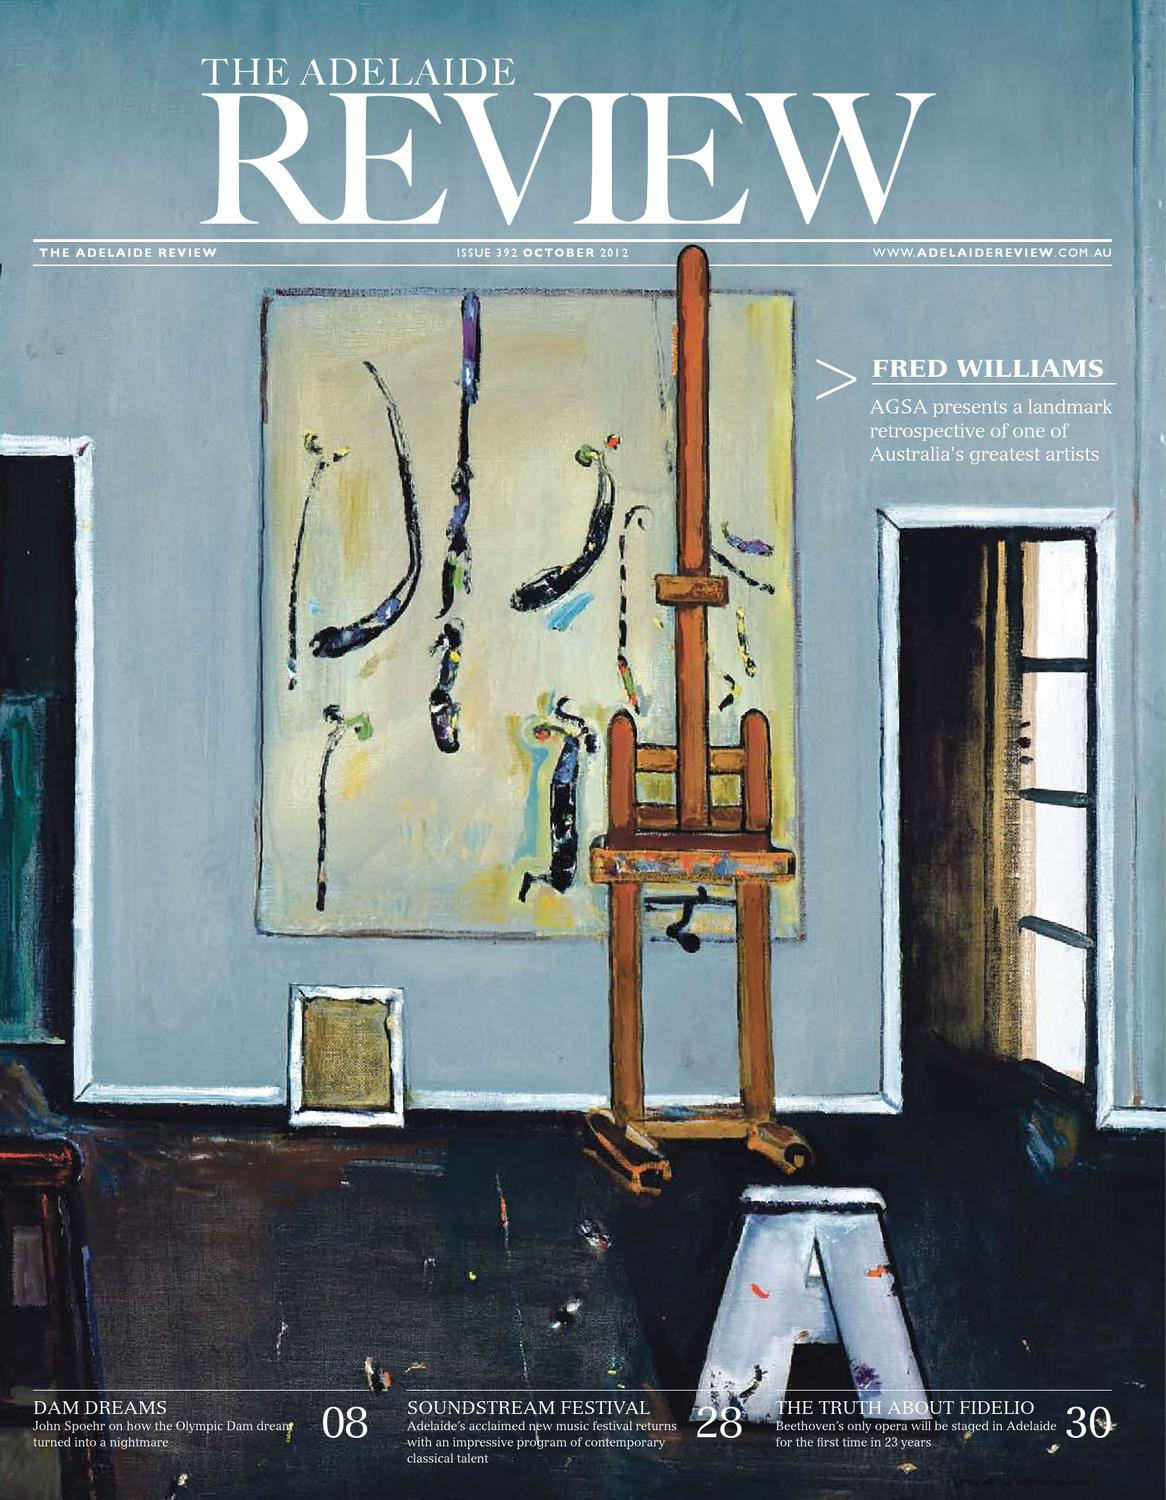 The Adelaide Review October 2012 by The Adelaide Review - issuu